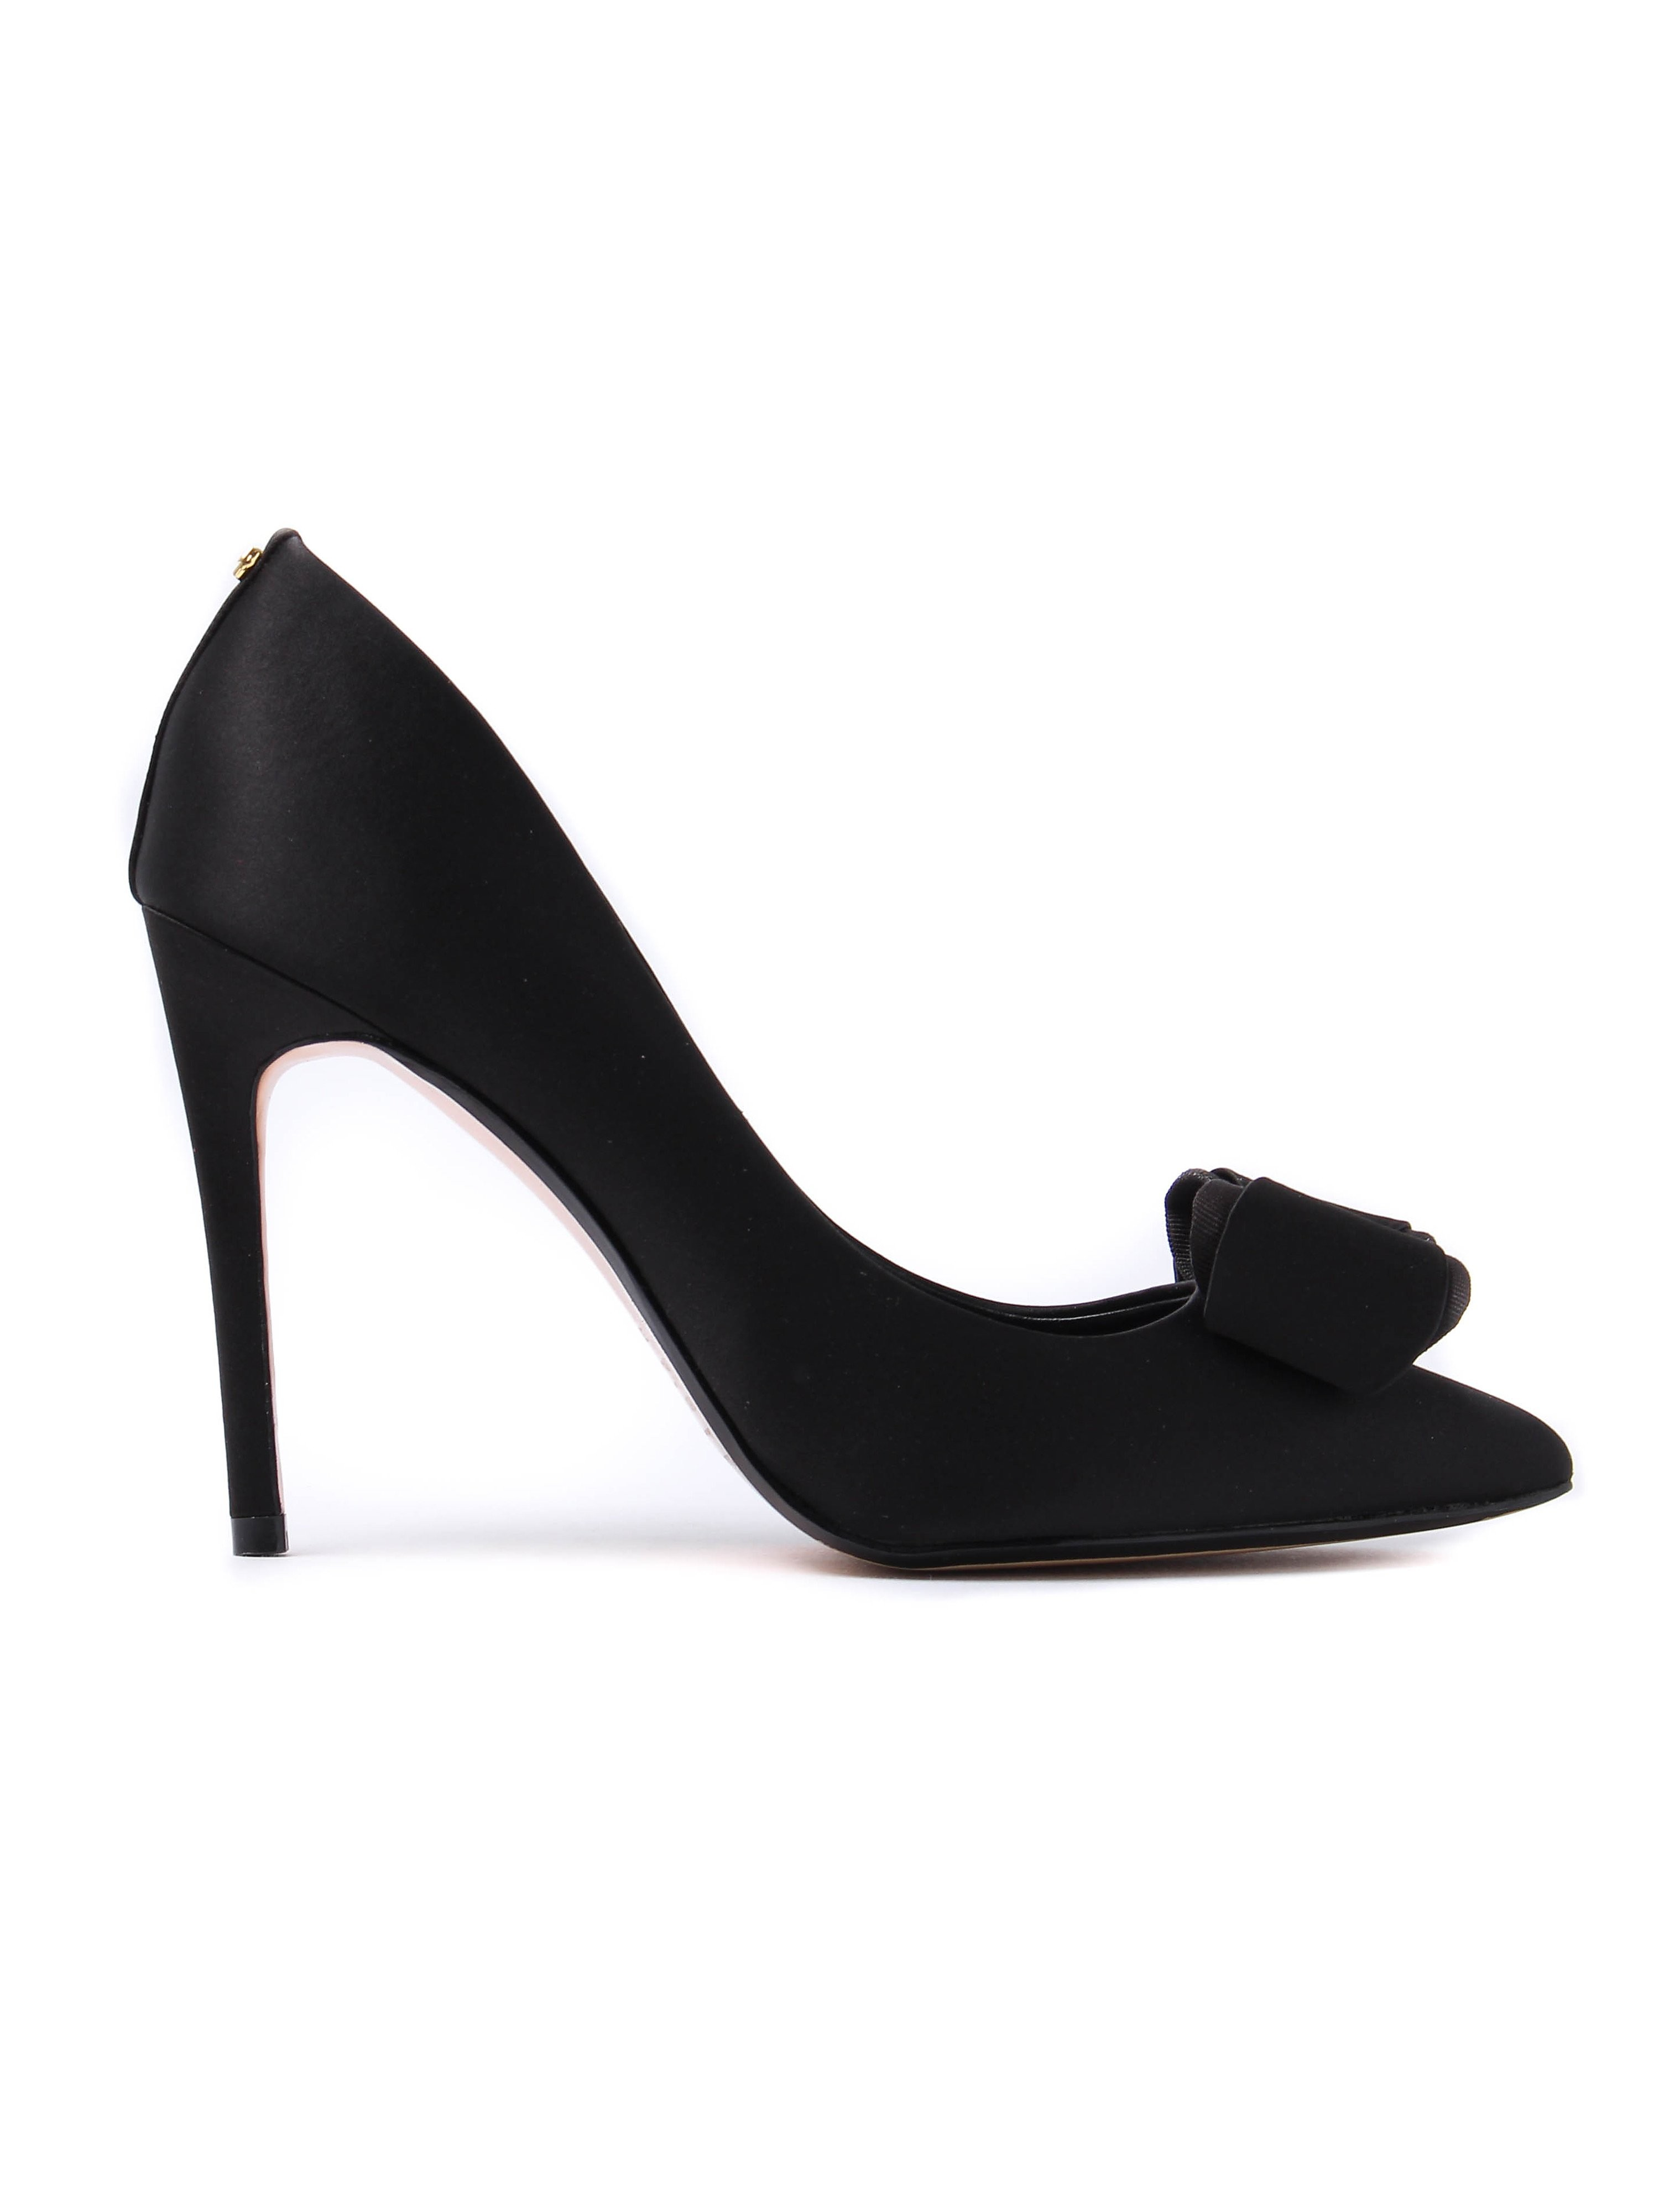 Ted Baker Women's Azeline Pointed Court Shoes - Black